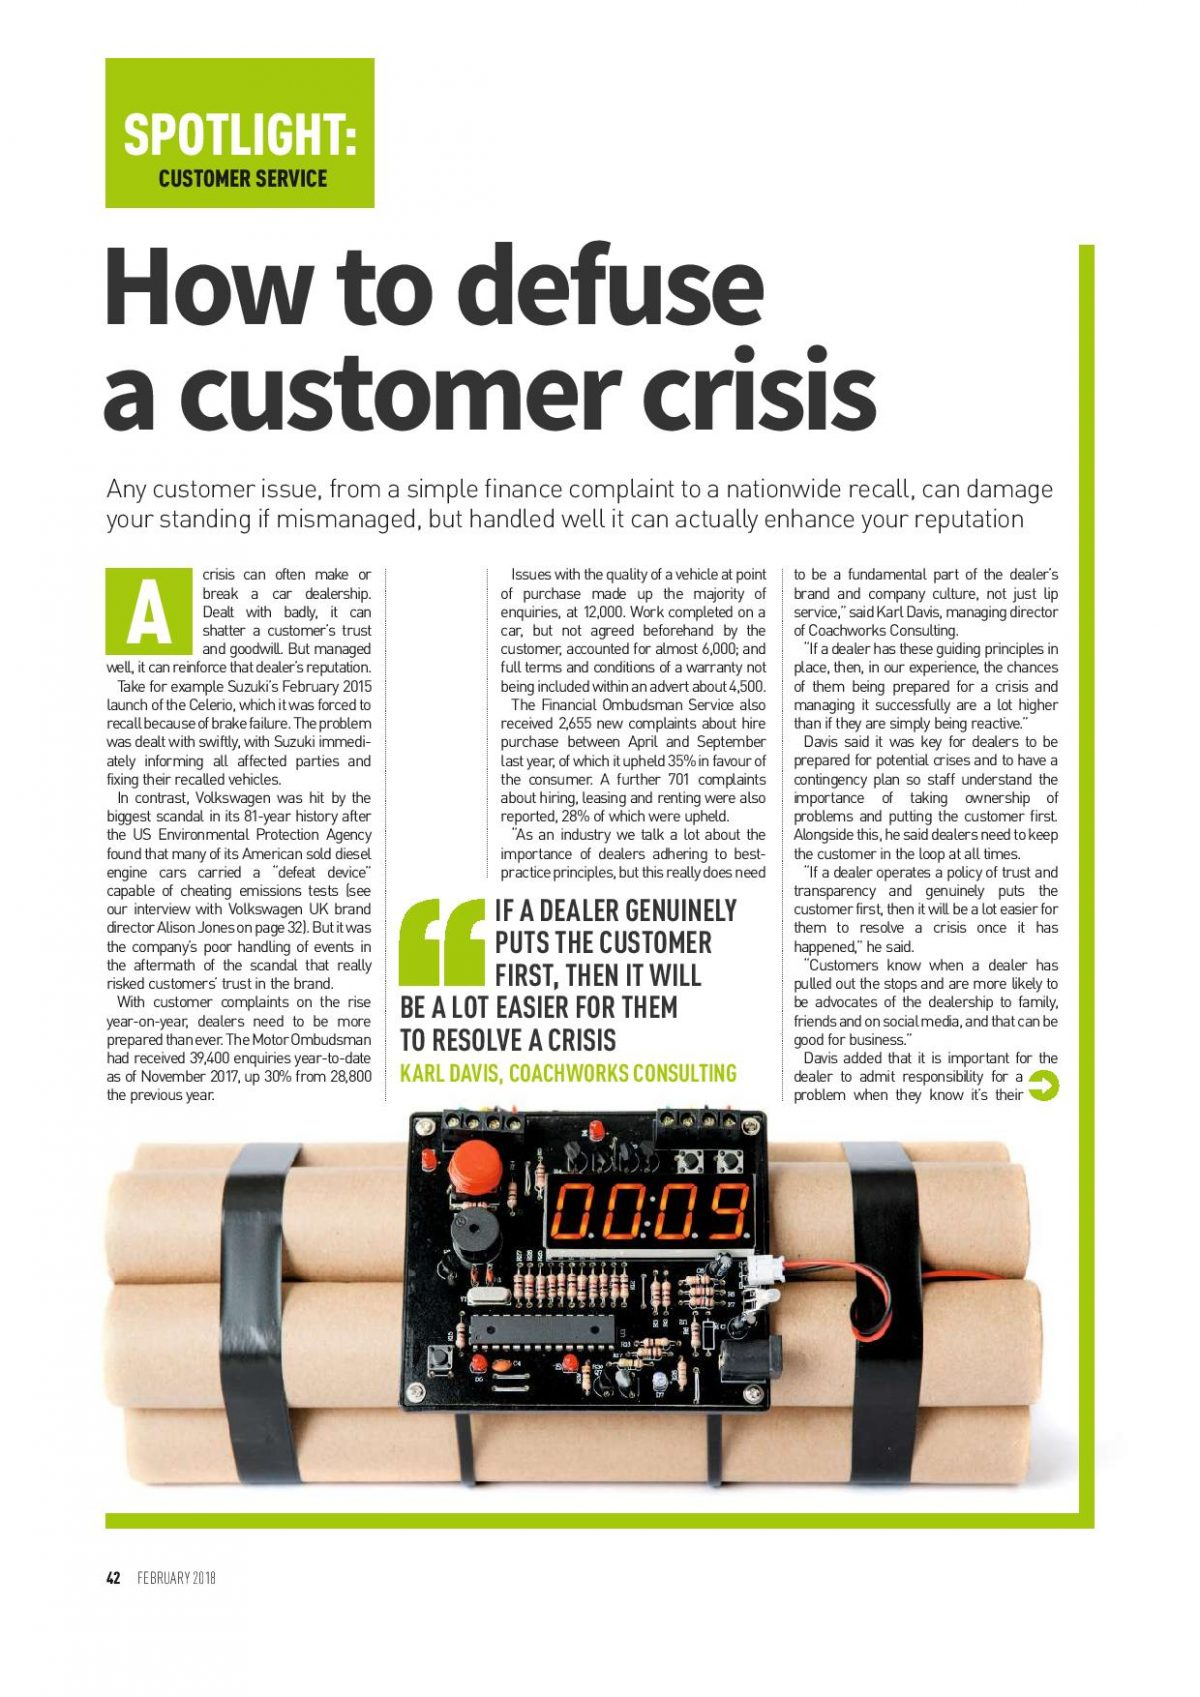 how-to-diffuse-a-customer-crisis